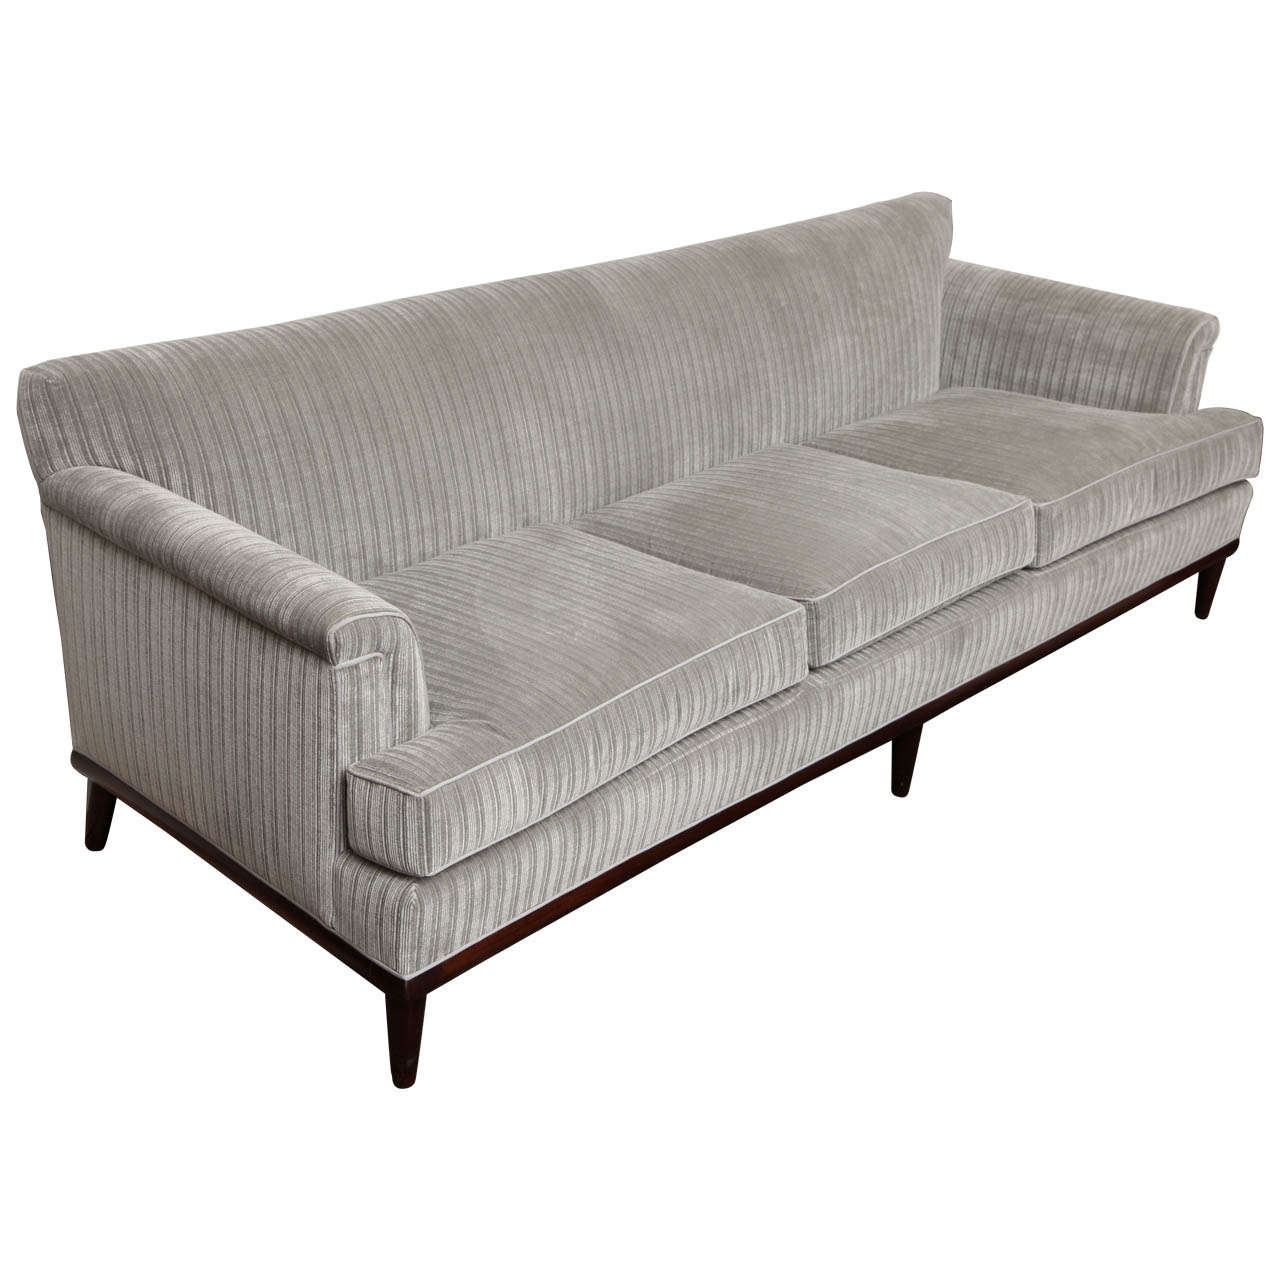 195039s sofa at 1stdibs for 50s sectional sofa